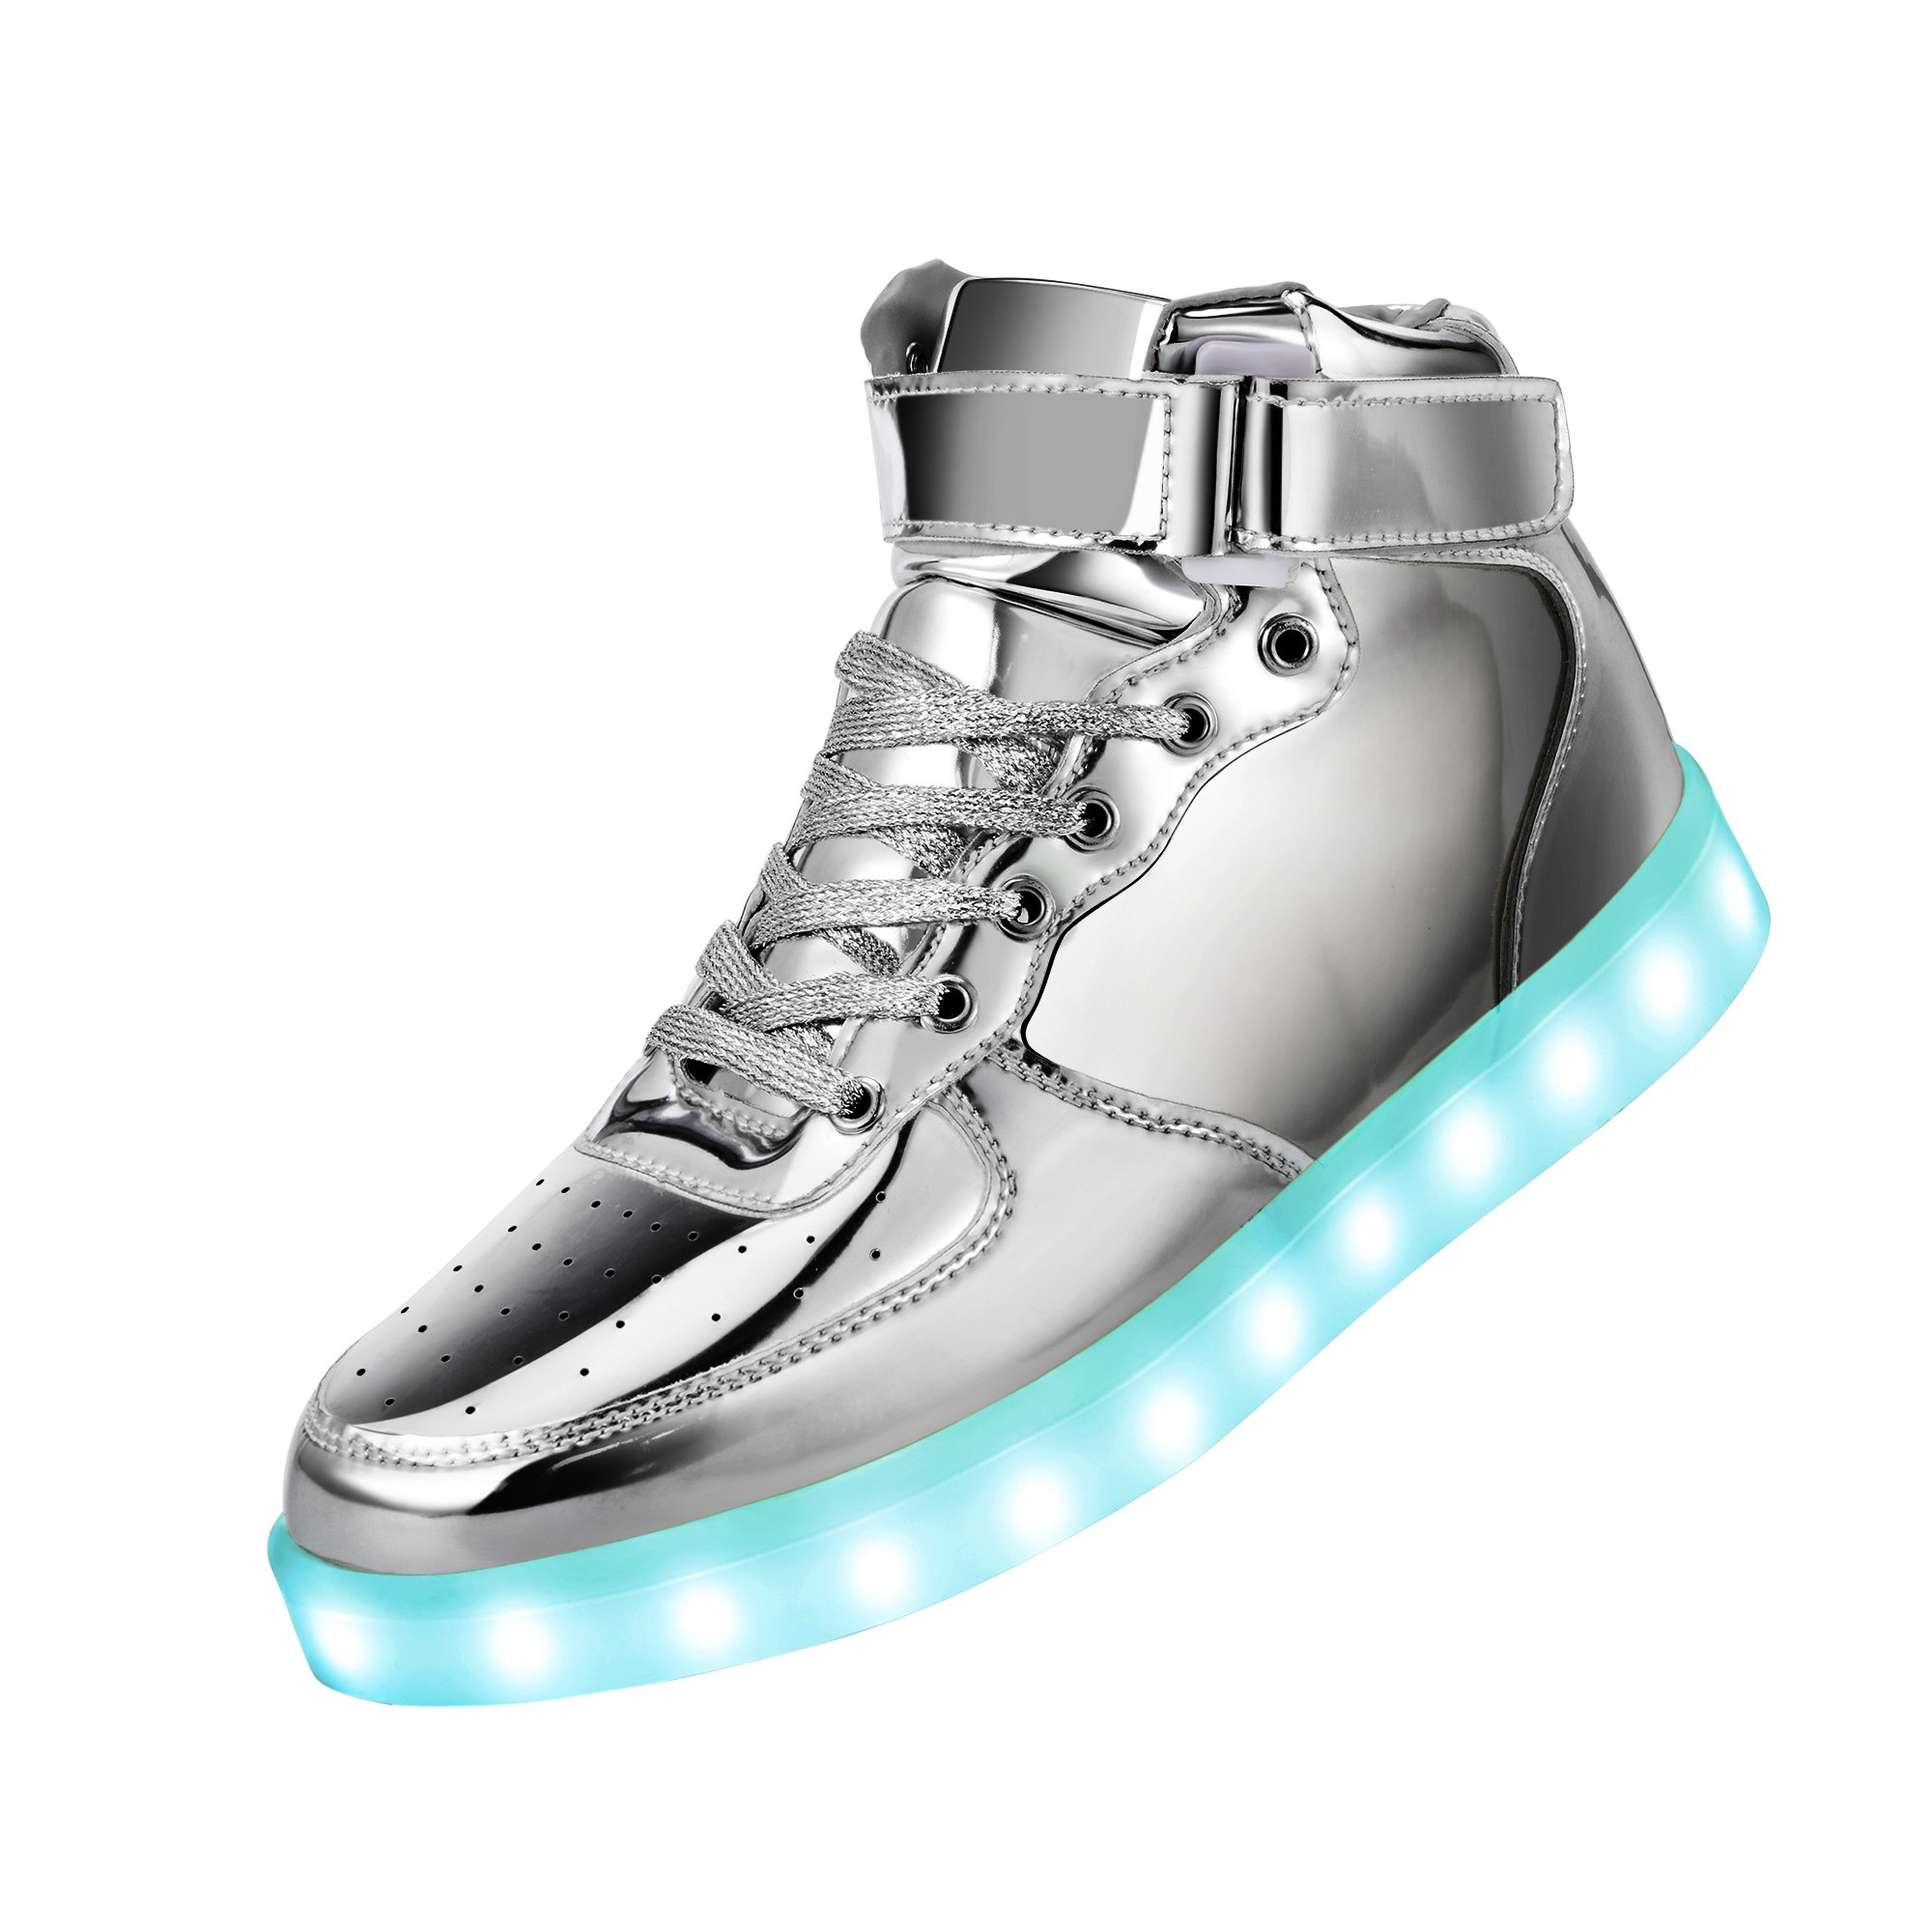 Fashion High Top LED Shoes Light up Sneaker 7 Color Flashing/USB Charge/Halloween/Christmas/Thanksgiving Gift(6B(M) US-Women/4.5D(M) US-Men, Silver)